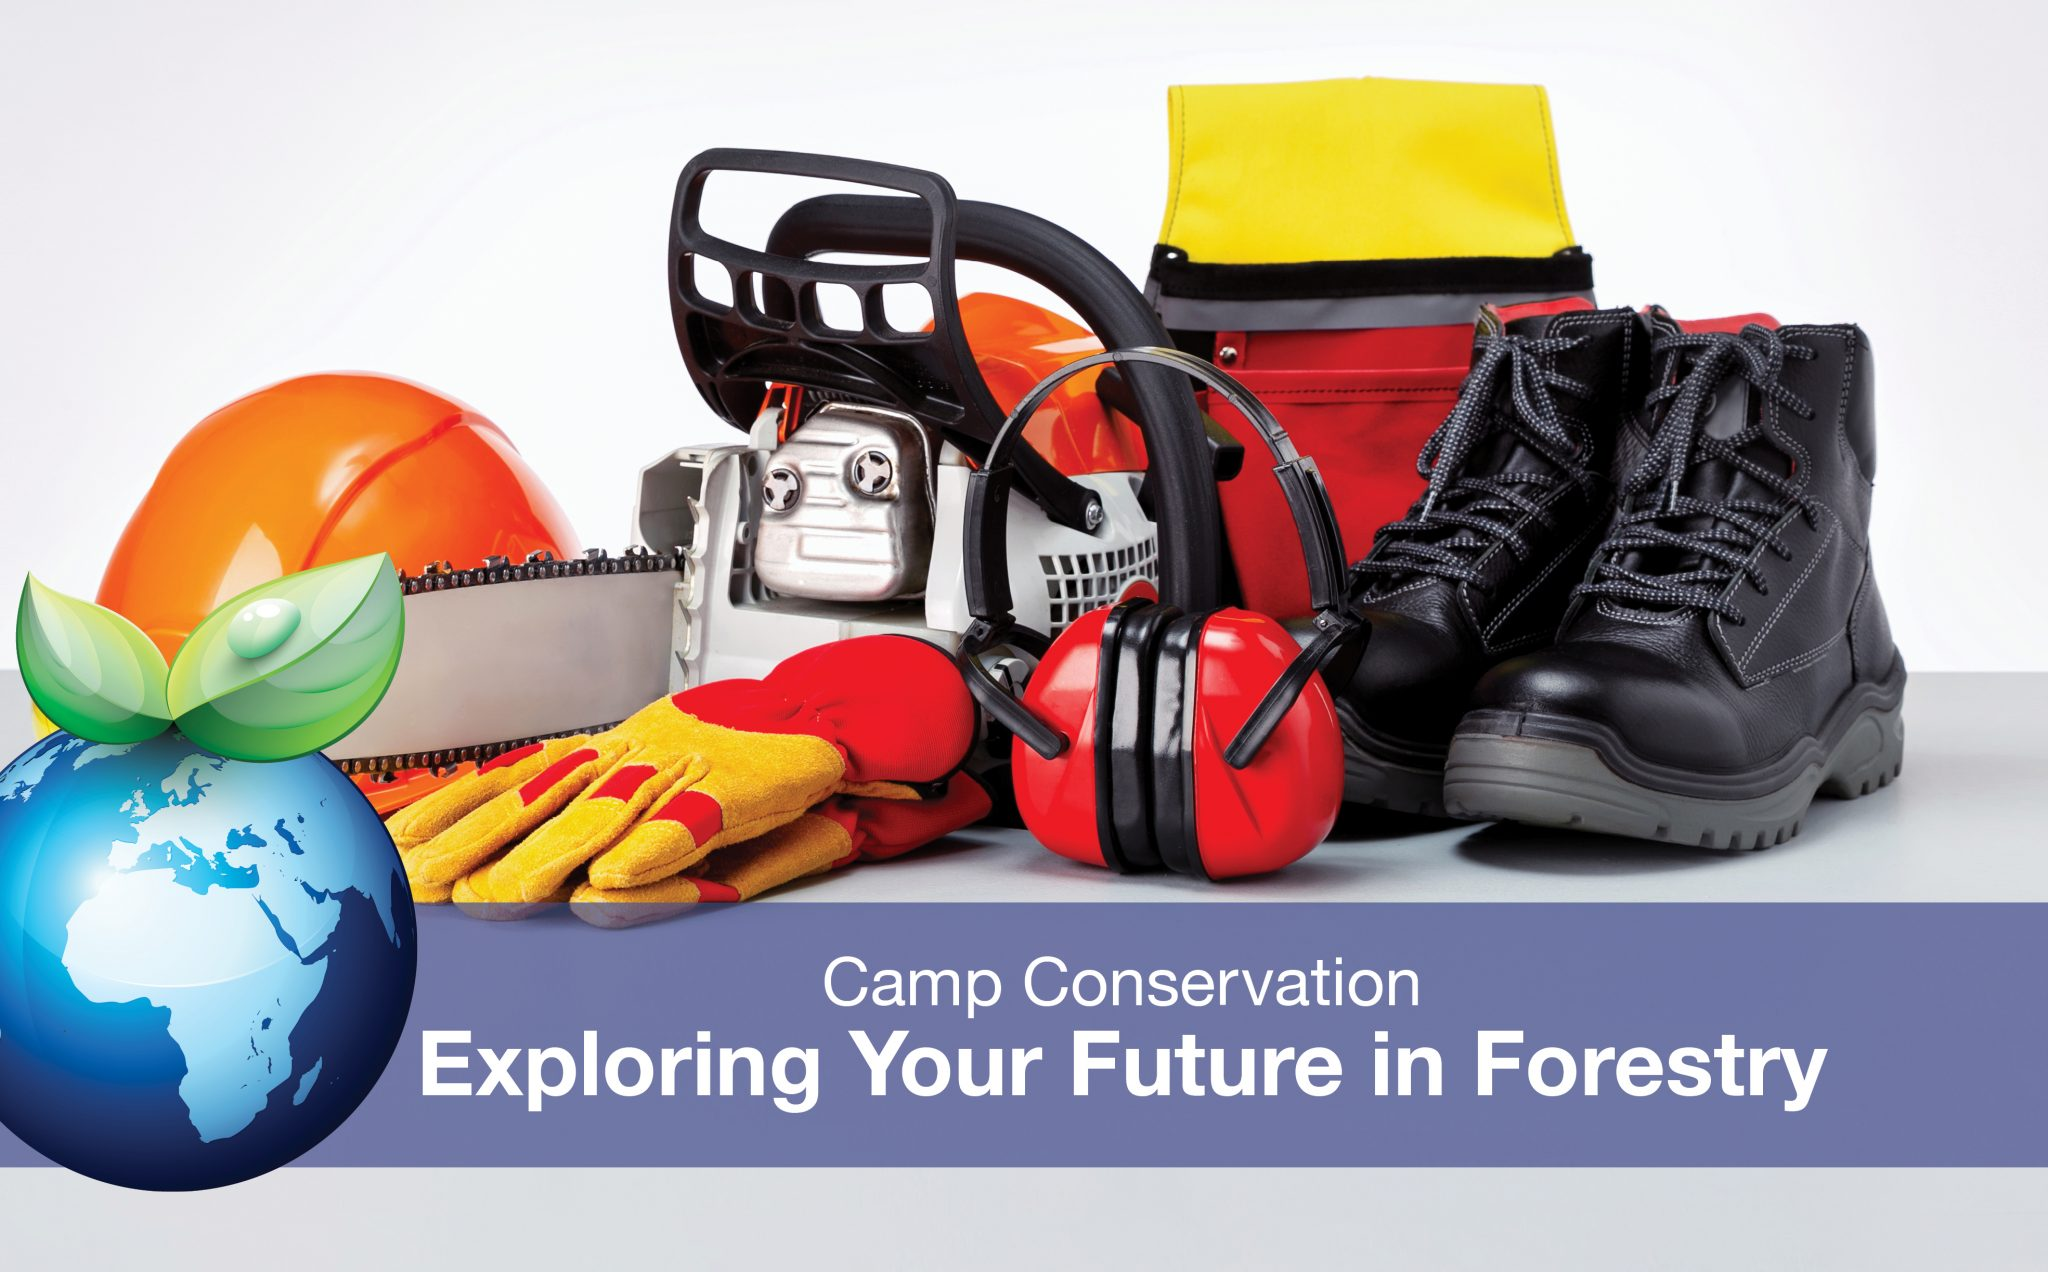 Forestry gear: hard hat, gloves, chainsaw, safety goggles.